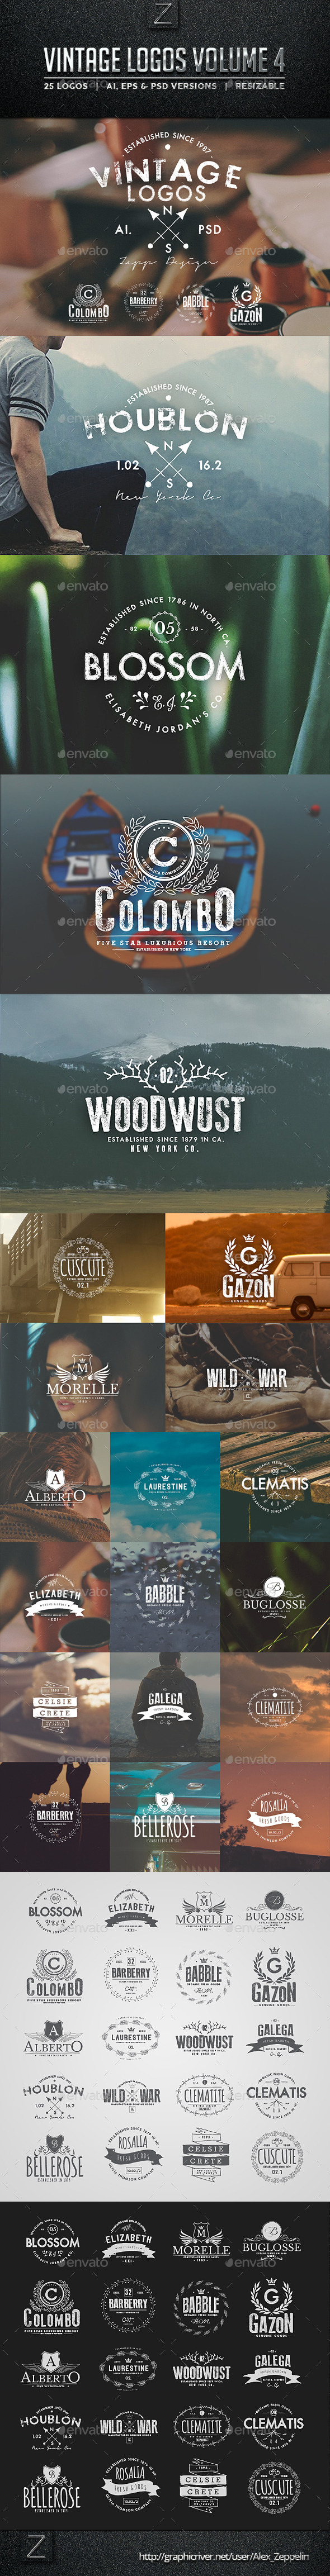 GraphicRiver Vintage Logos and Badges Set 4 10459419